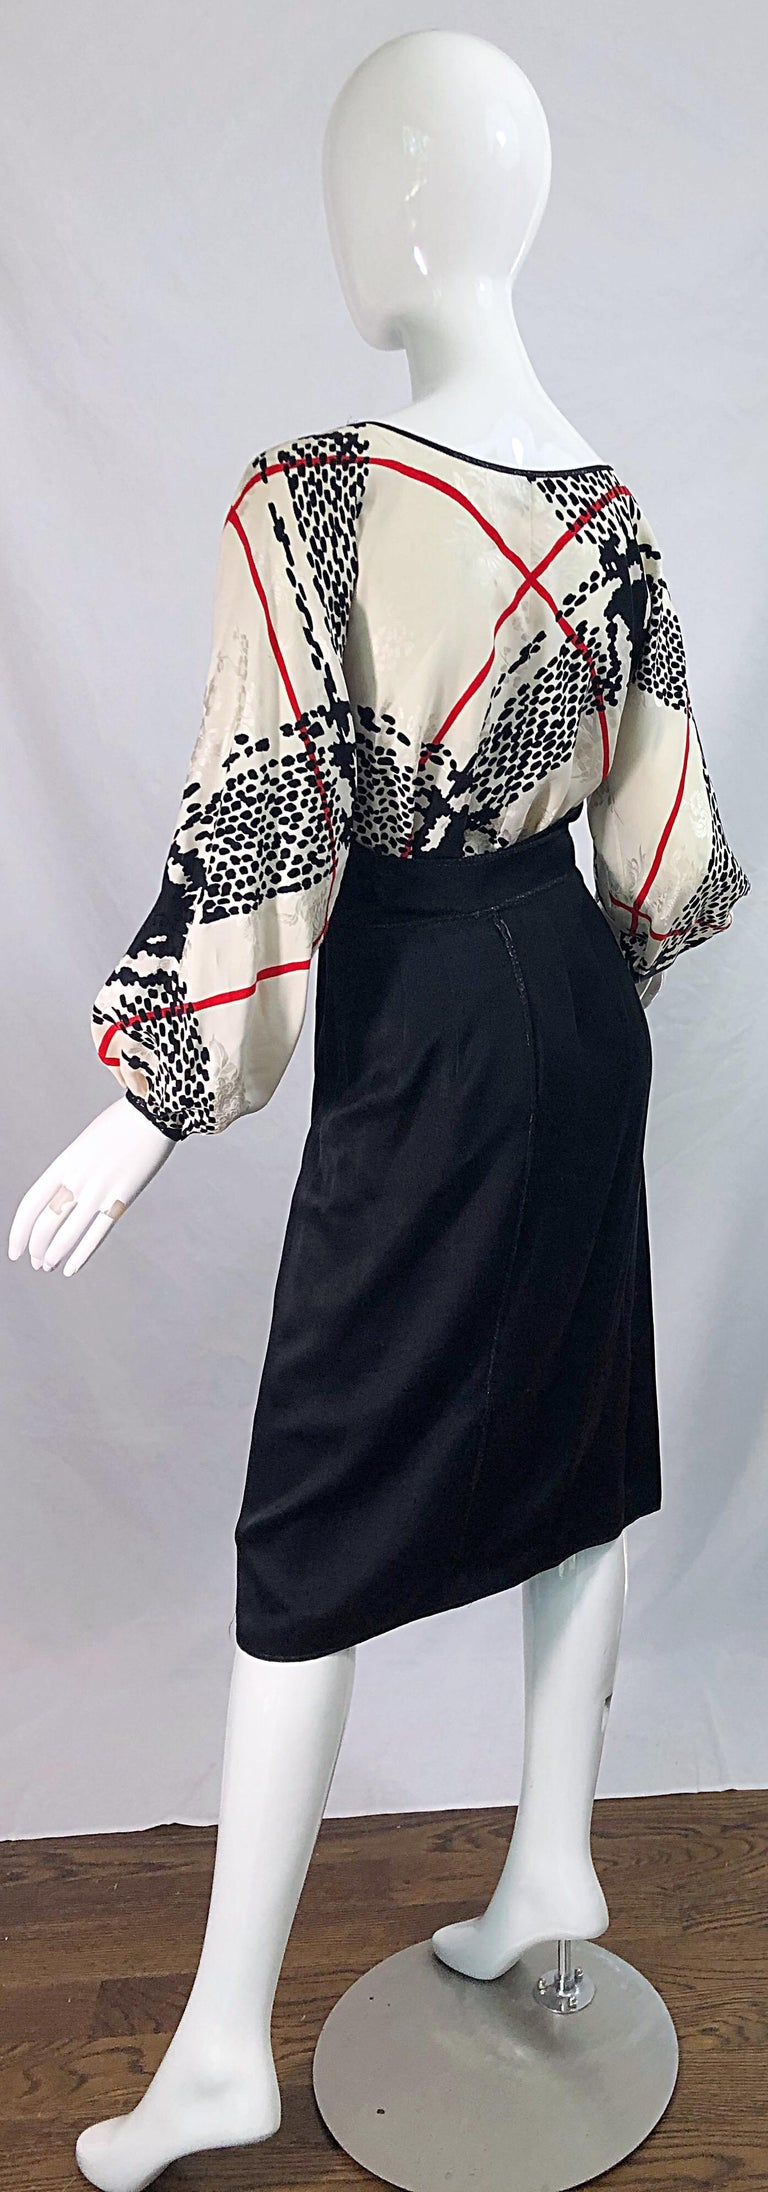 Vintage Geoffrey Beene Size 6 Houndstooth Black + White + Red Silk 80s Dress For Sale 9